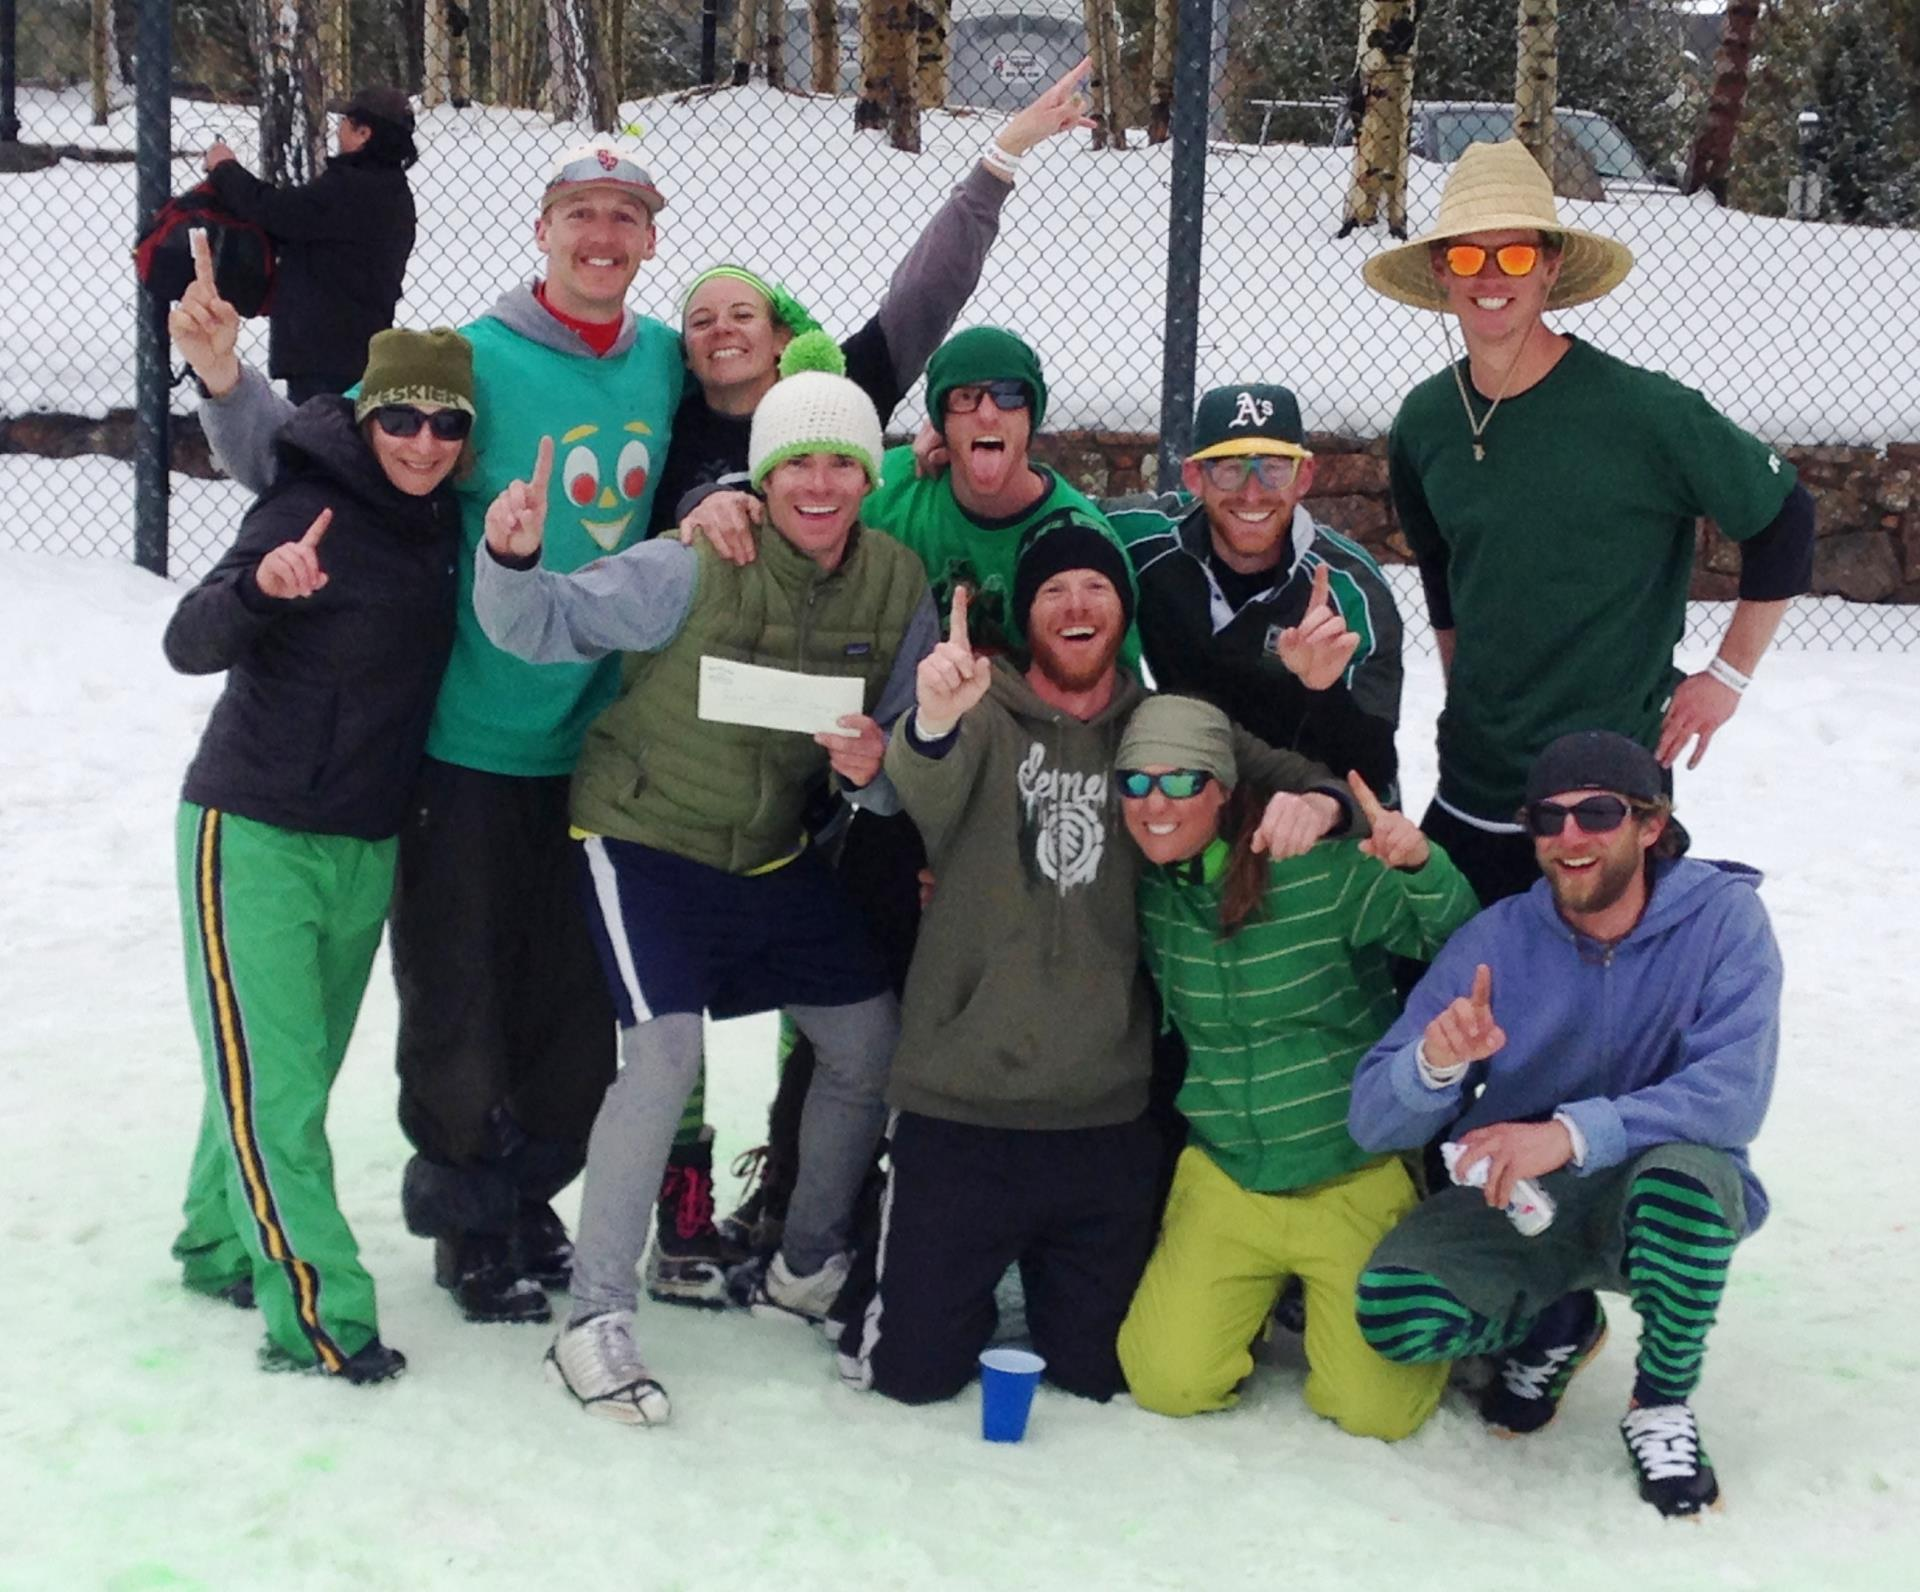 Group photo of previous SNOWPitch winners